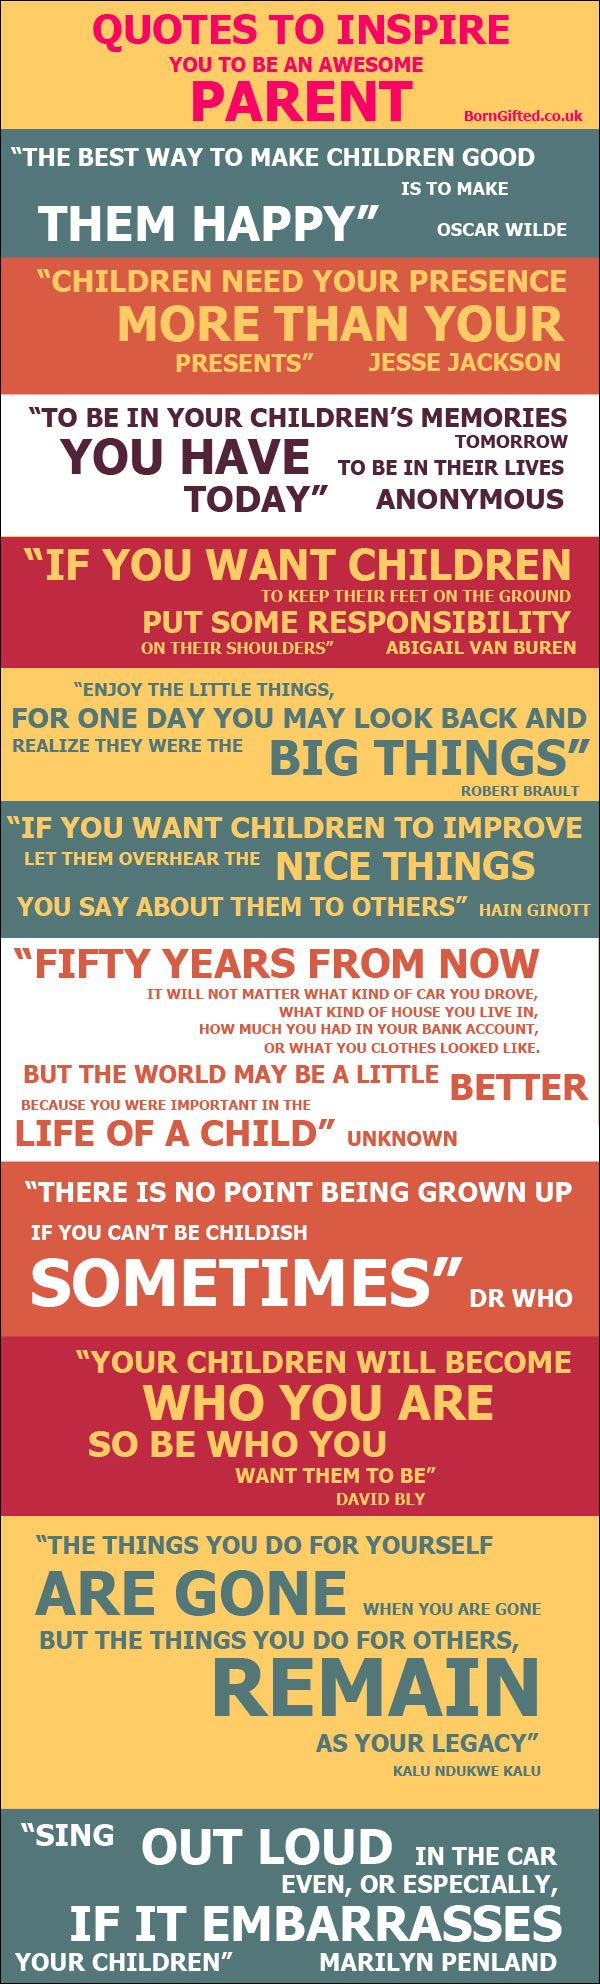 inspirational quotes about parent influence quotesgram